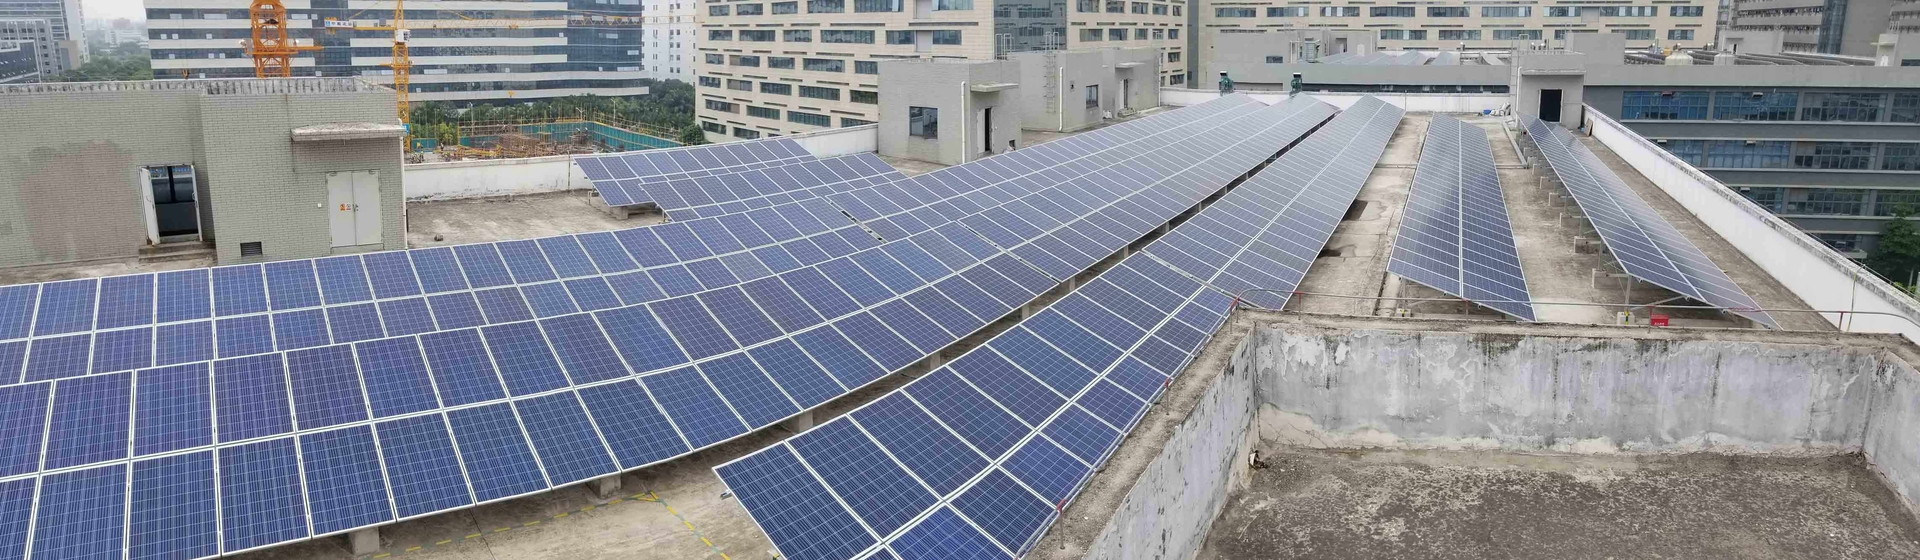 SHENZHEN 200KW ON-GRID SOLAR SYSTEM